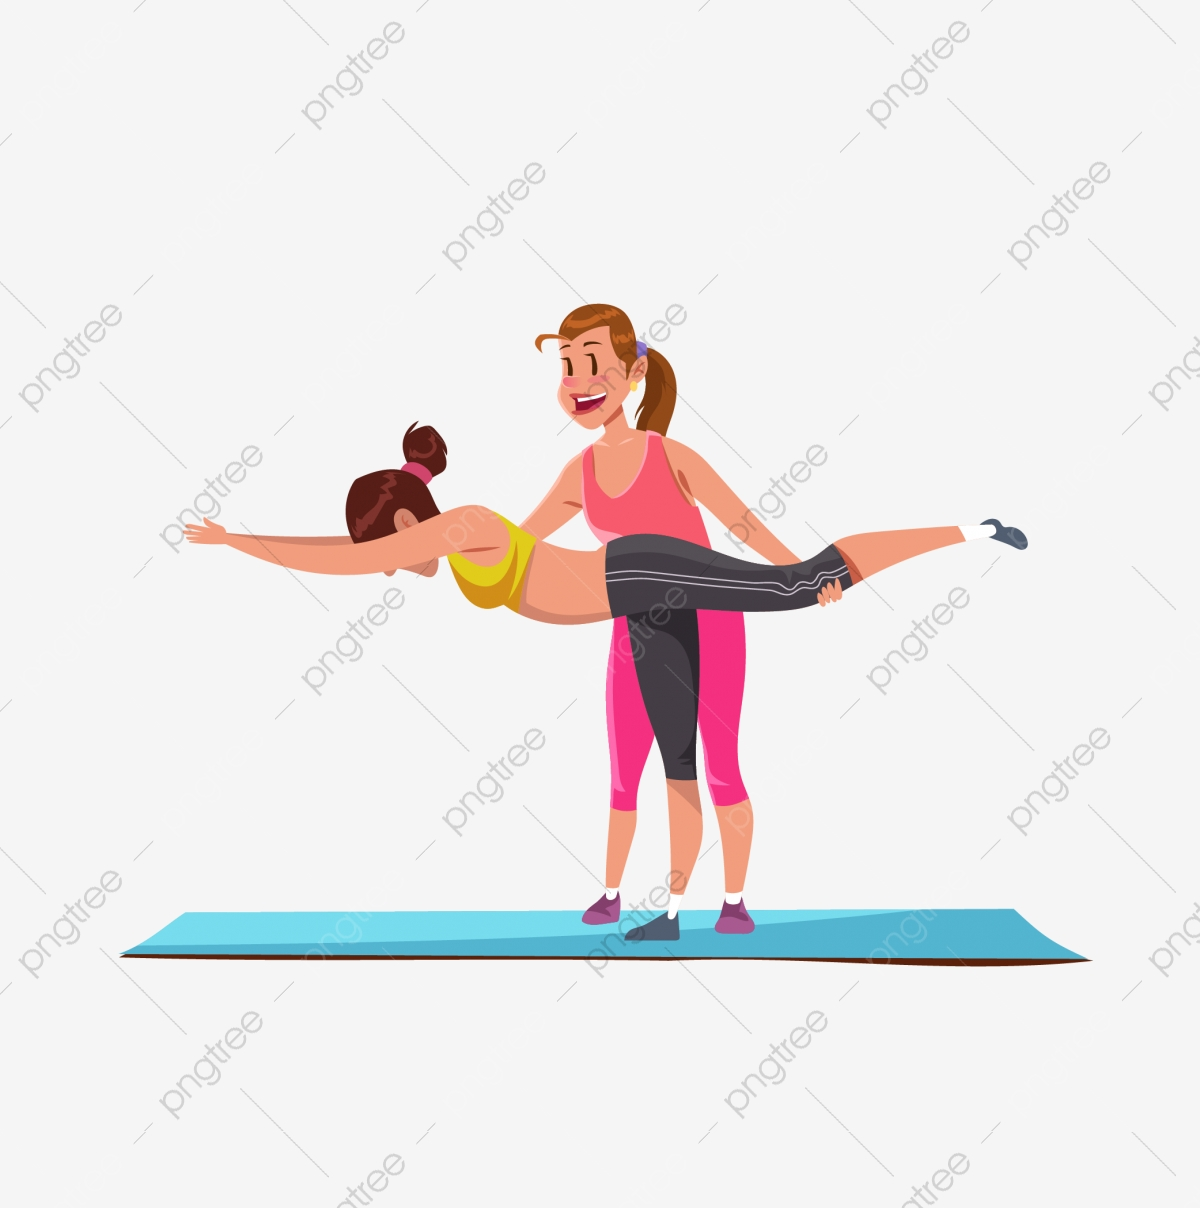 Yoga Cartoon Yoga Yoga Mat Pilates Coach Athlete Work Out Png And Vector With Transparent Background For Free Download